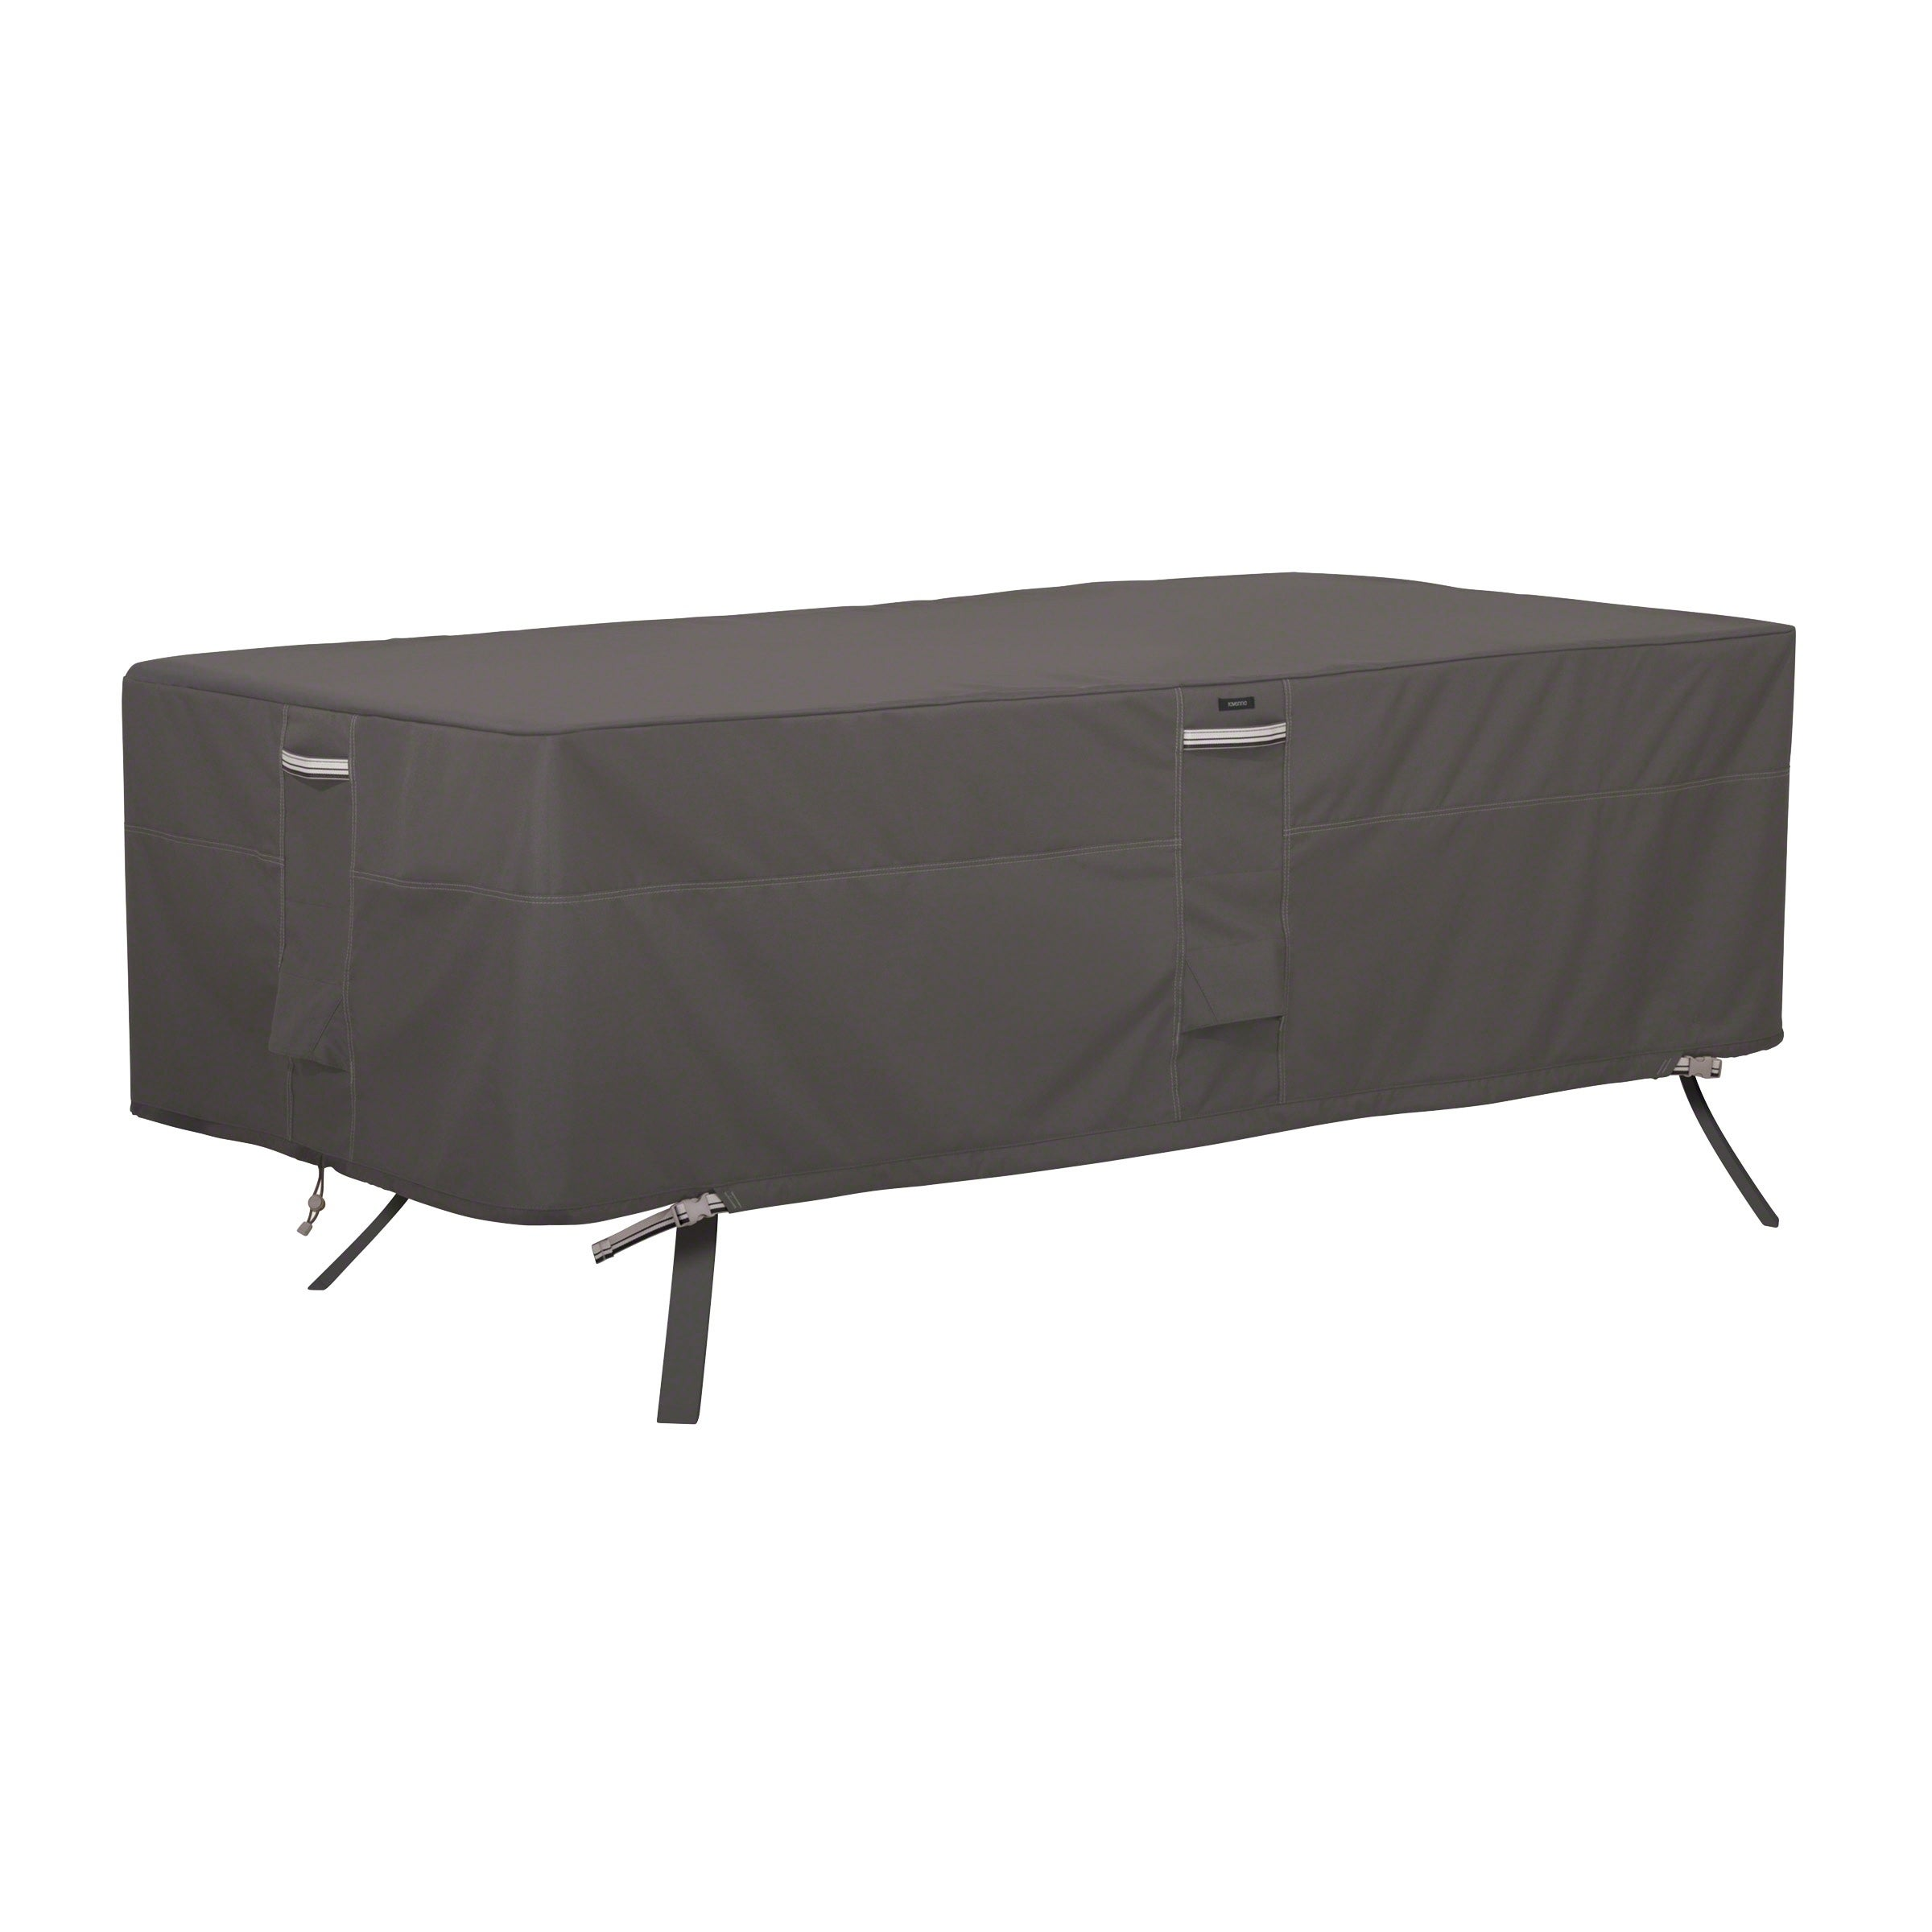 Shop Ravenna Rectangular Oval Patio Table Cover Large 72\\\ l X 44 Garden Table Covers Patio Table Cover  sc 1 st  House Architecture Design & Patio Table Cover - House Architecture Design